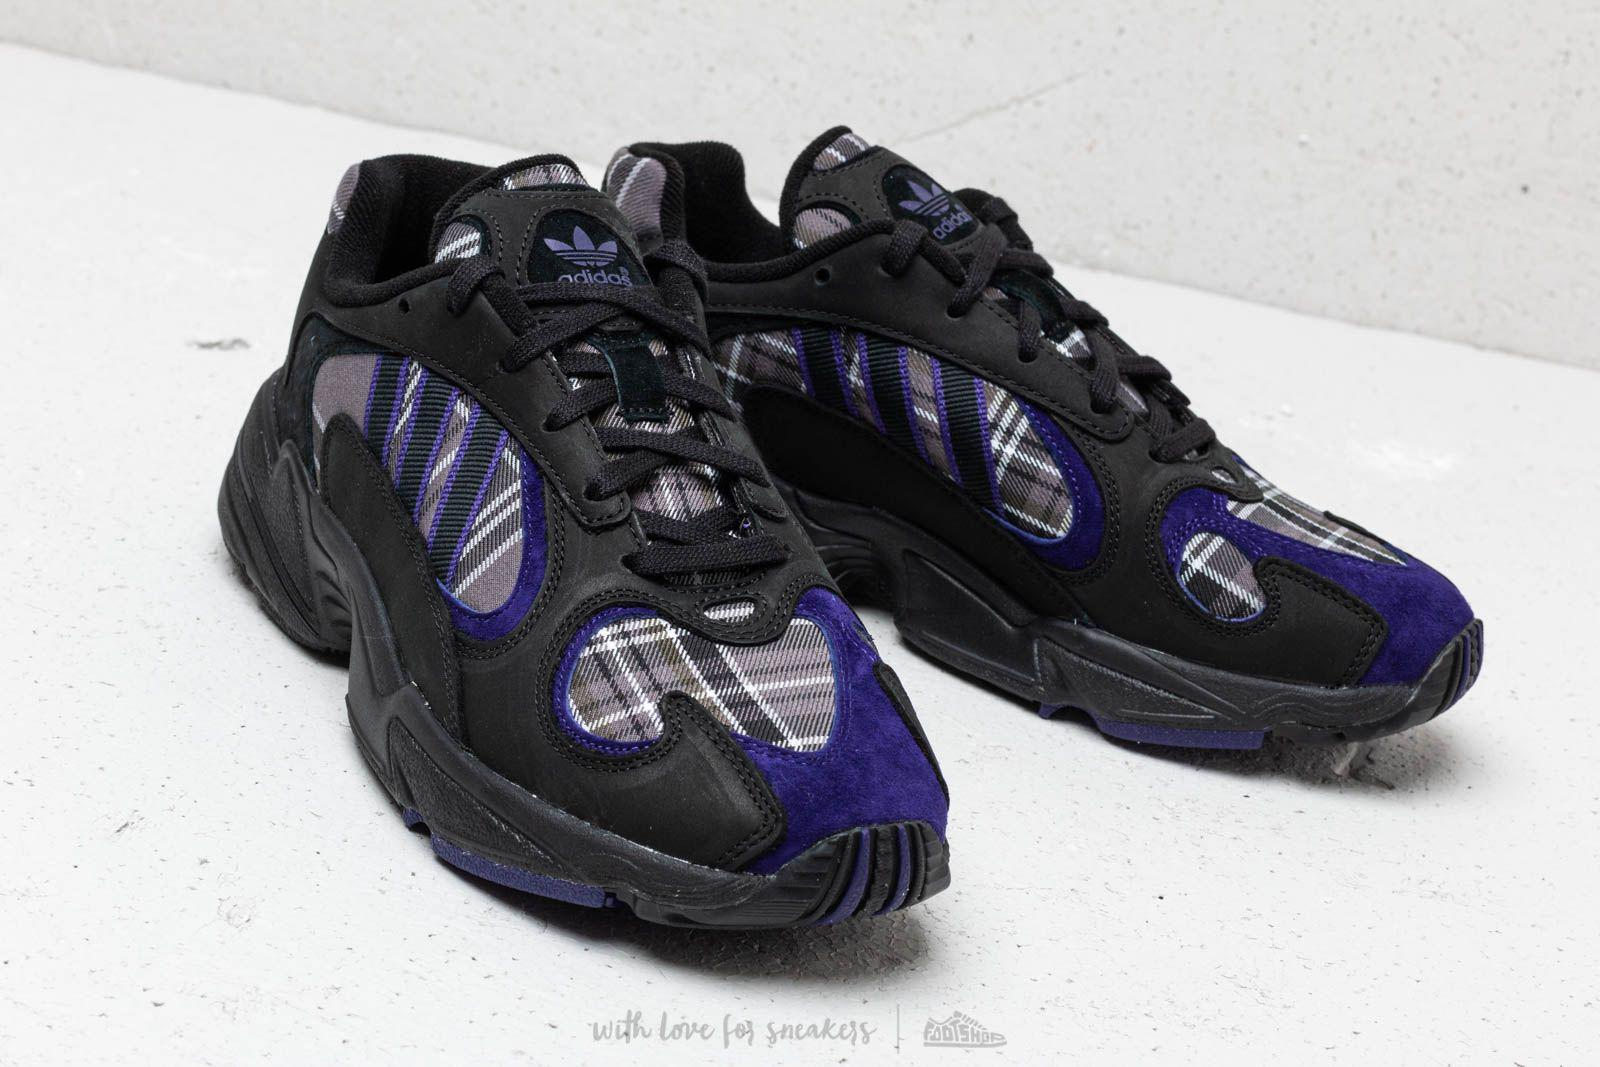 detailed look 6631a 0ee79 Adidas Originals - Adidas Yung-1 Core Black Core Purple Core Black for.  View fullscreen